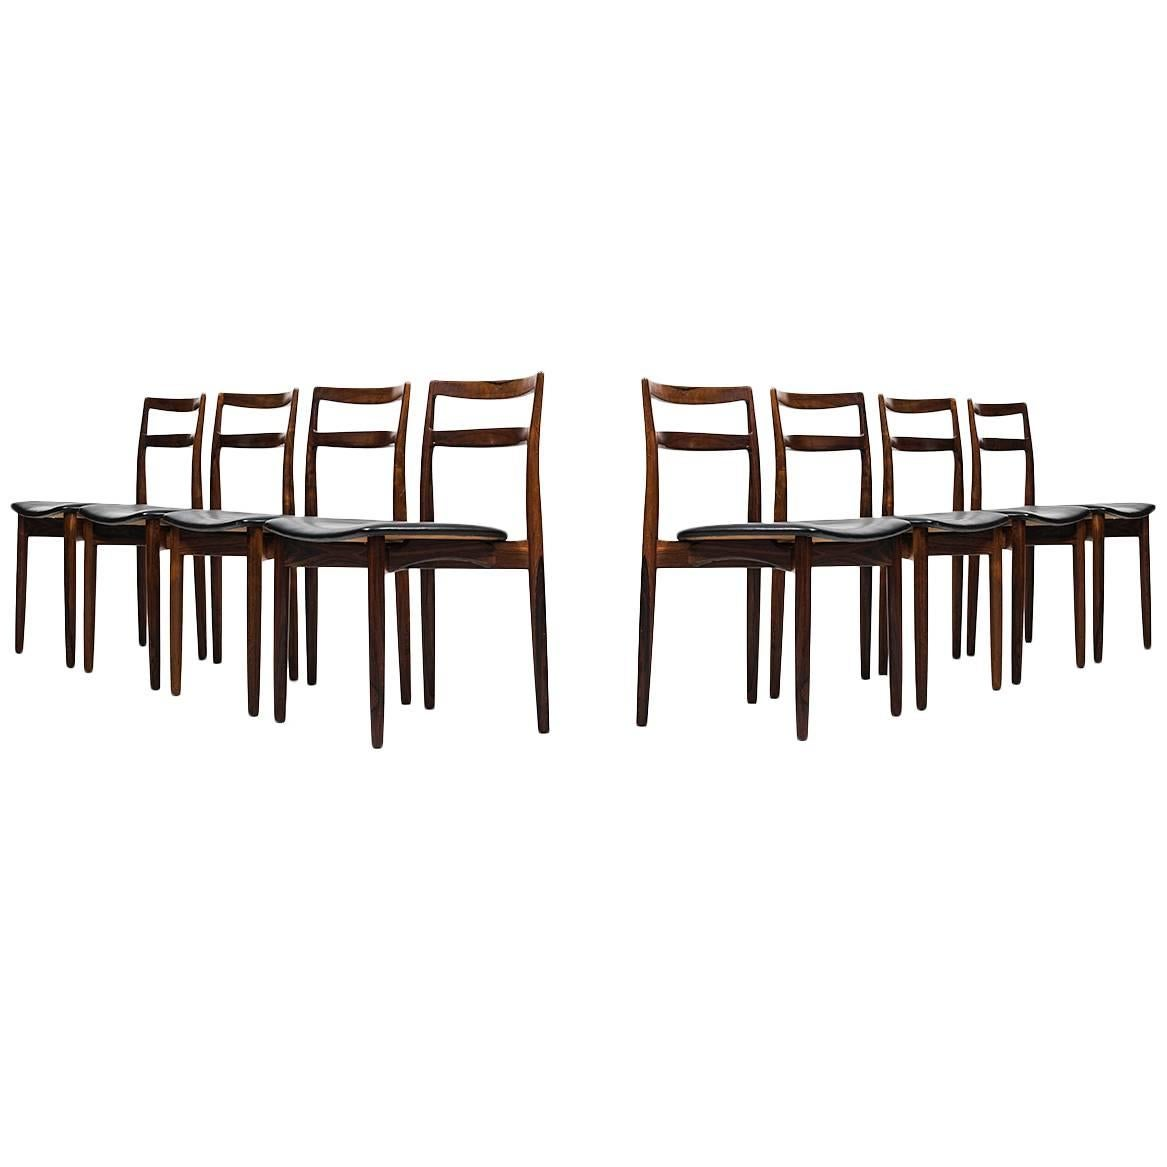 Harry Østergaard Dining Chairs Model 61 Produced by Randers Møbelfabrik